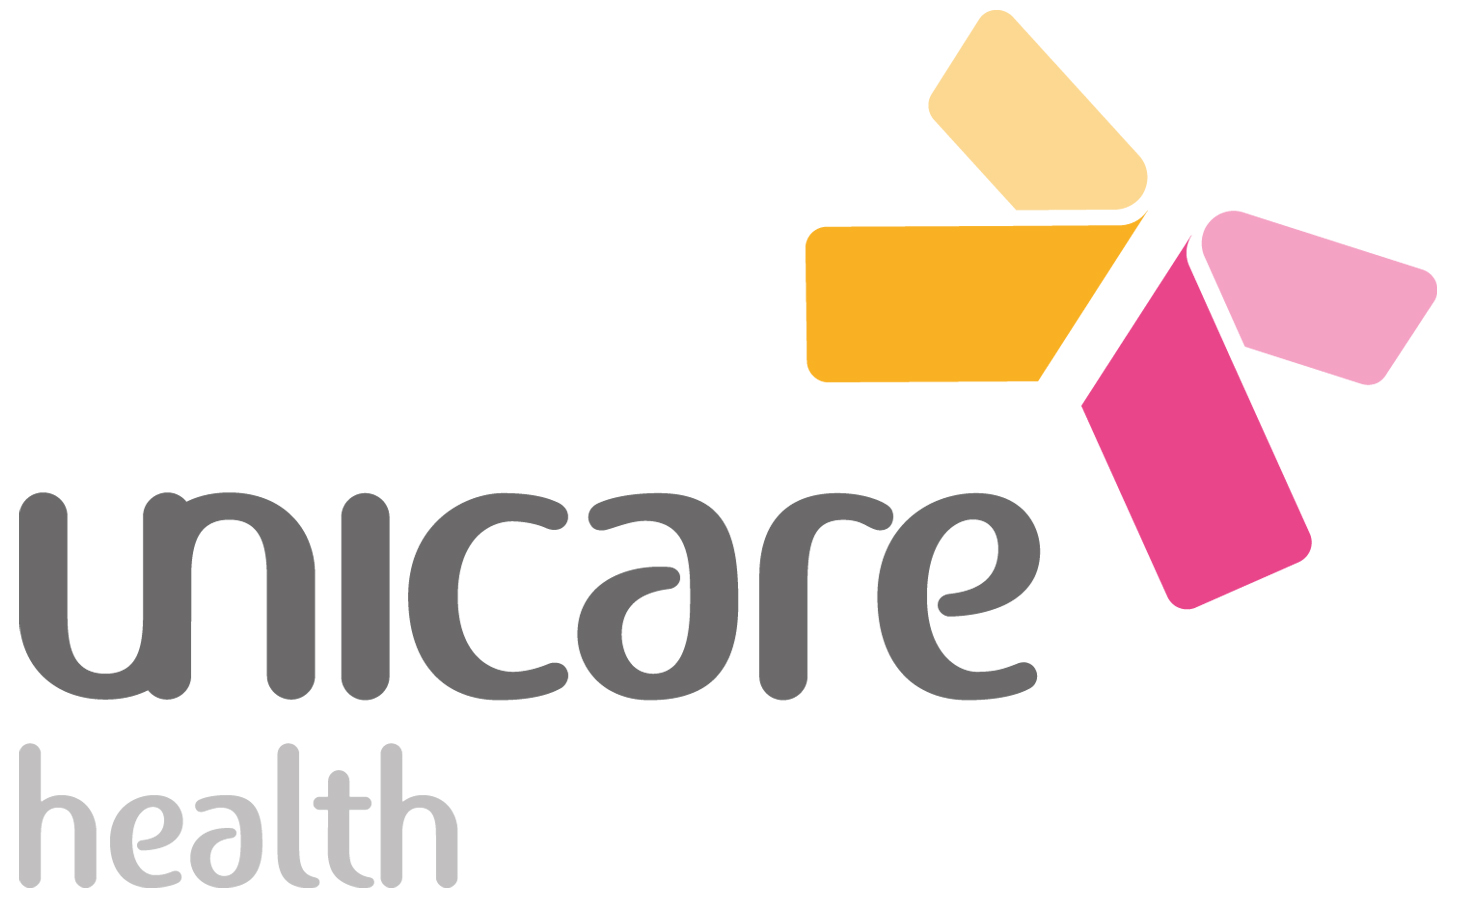 Unicare Health Logo